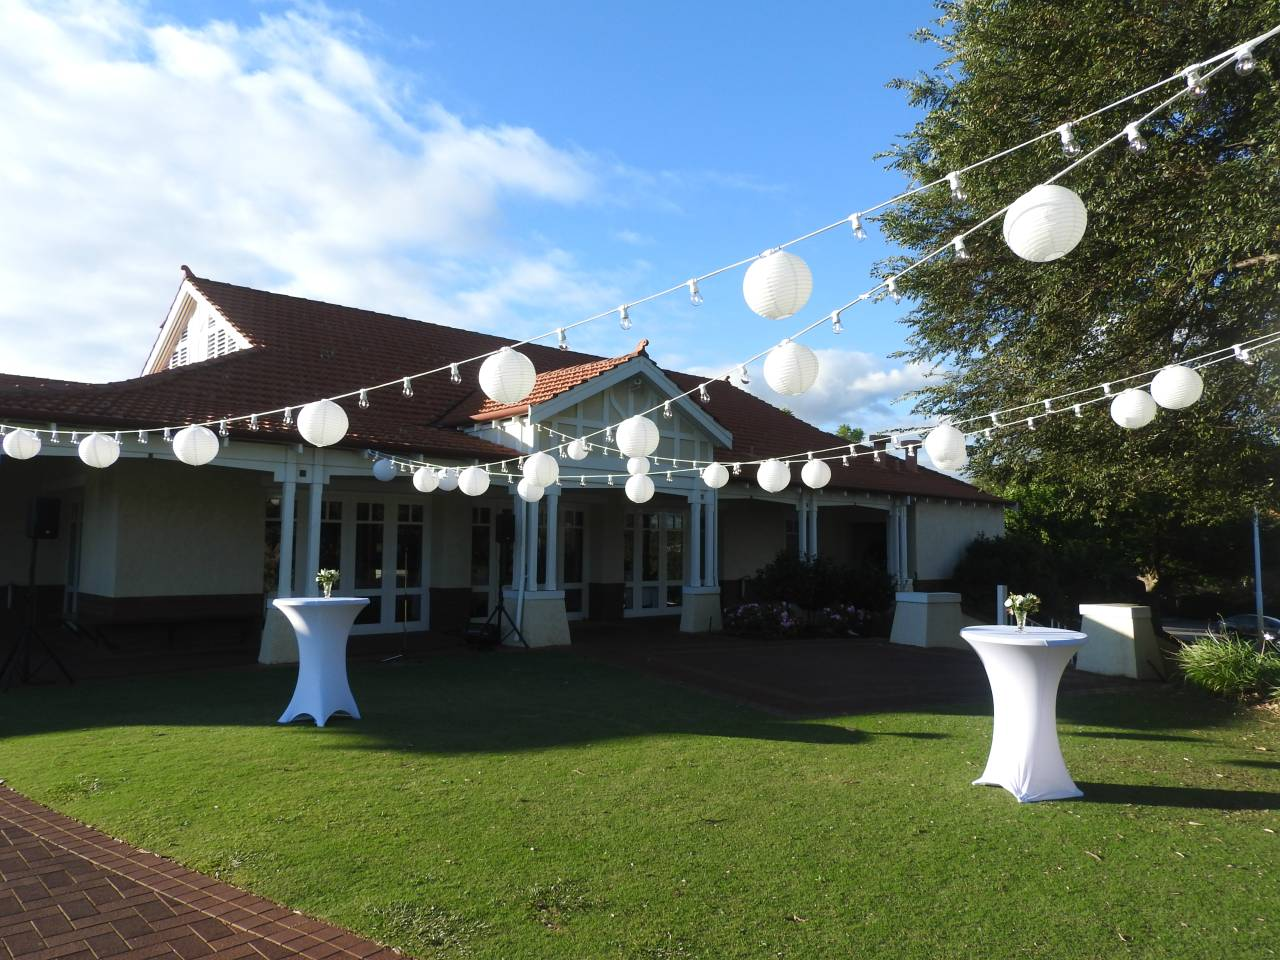 Federation Style Building Venue with Lawn and Tables set Up for a Celebration